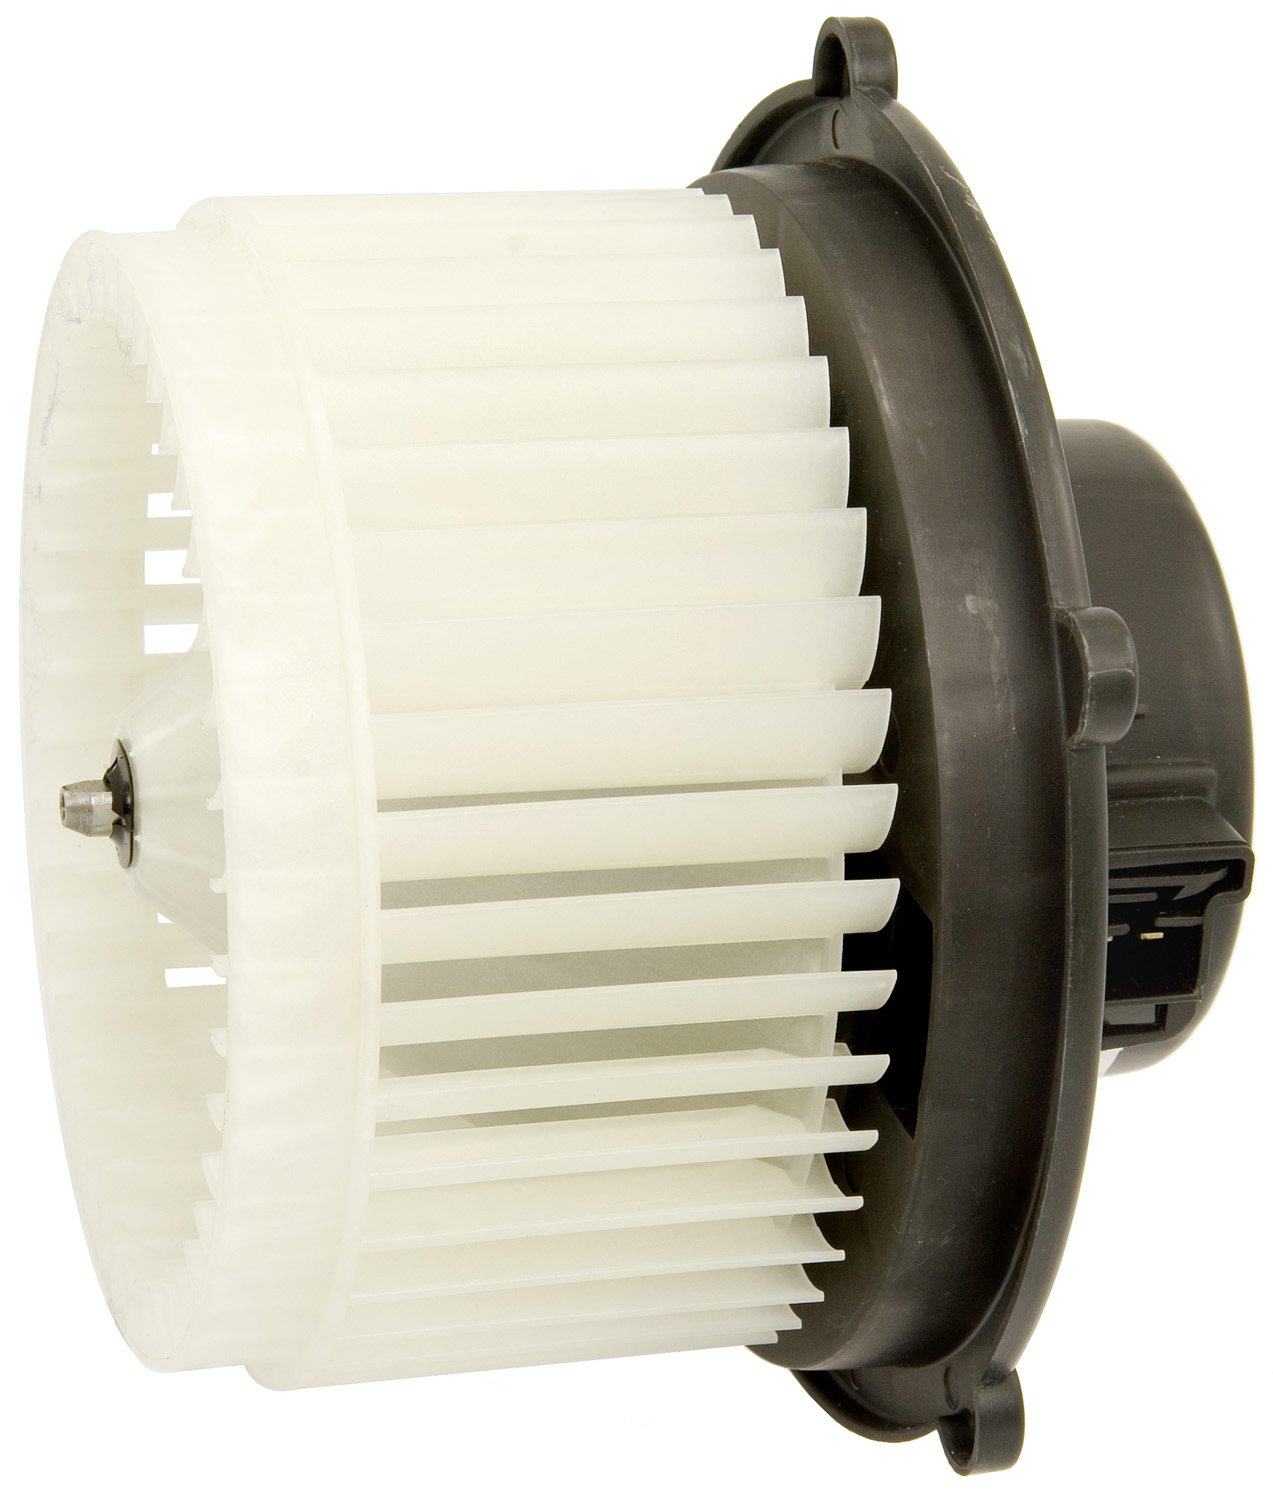 Four Seasons/Trumark 75773 Blower Motor with Wheel